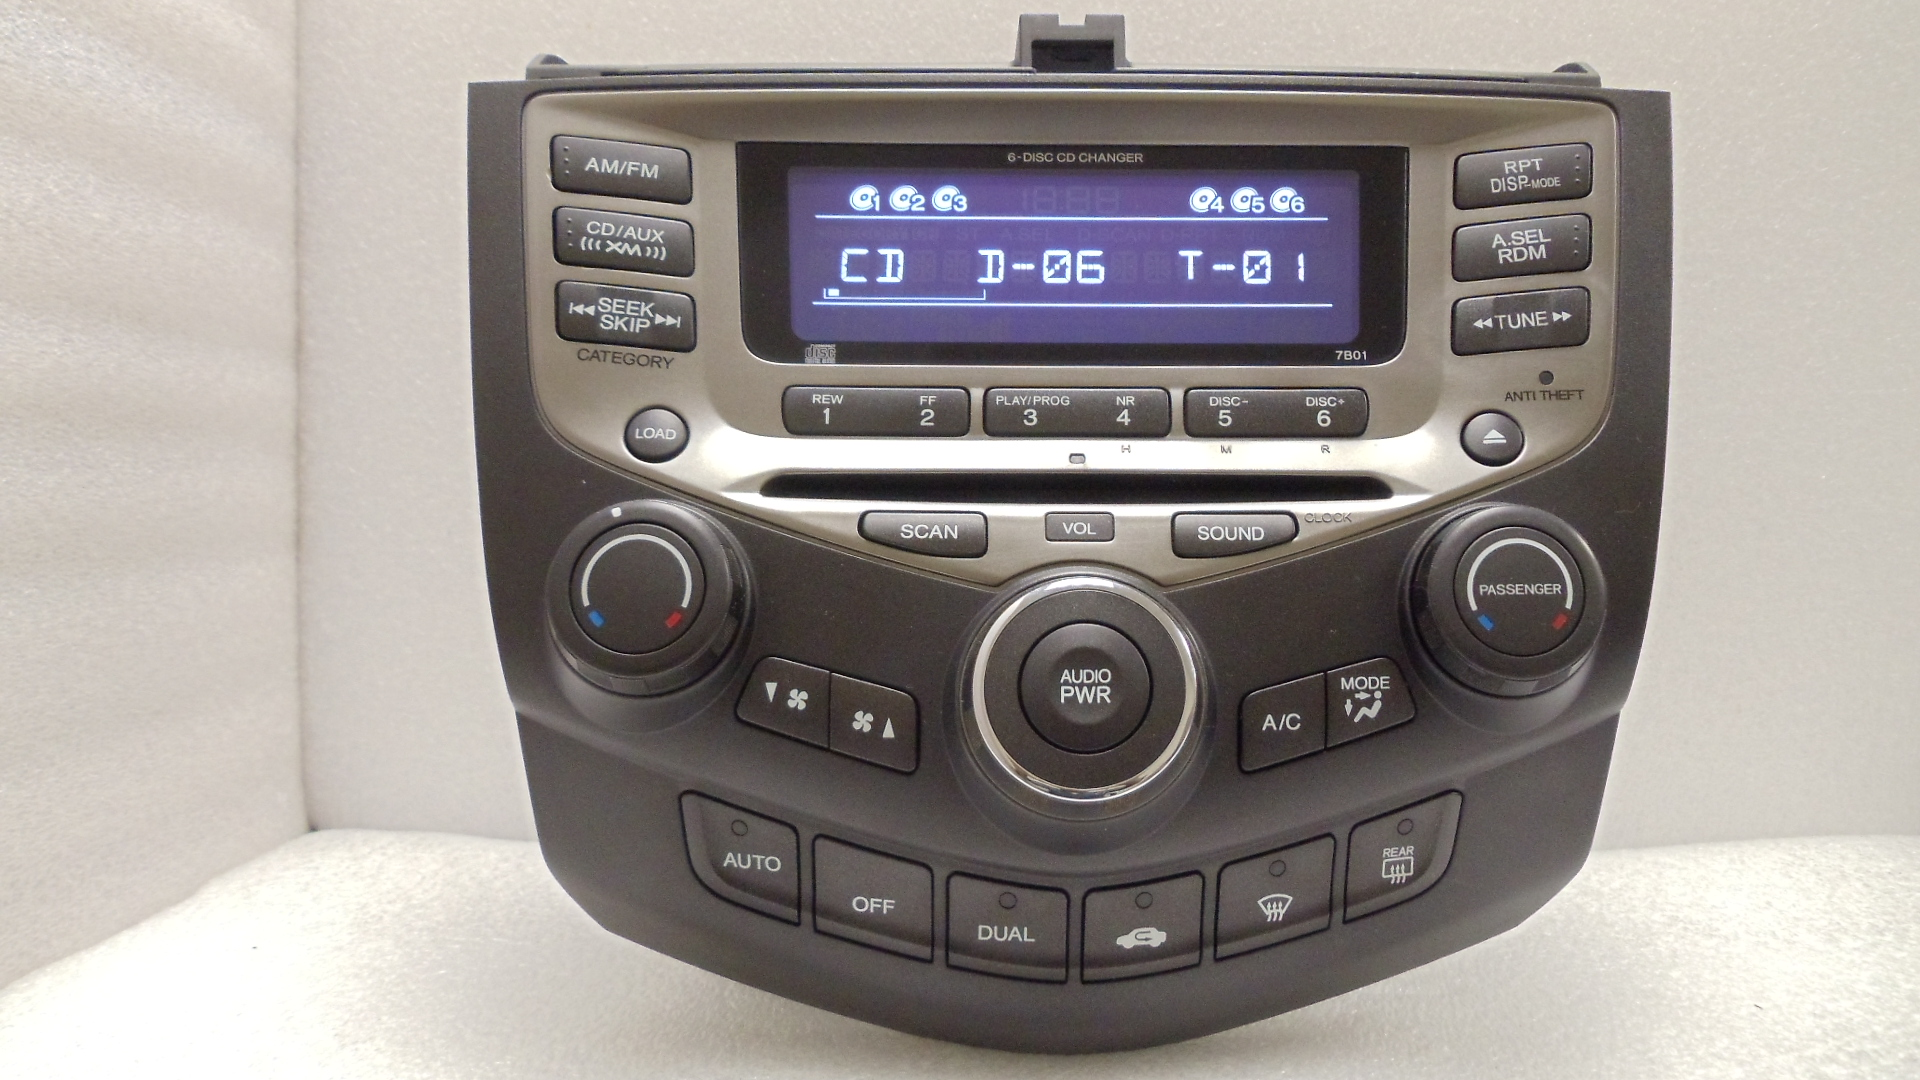 05 06 07 honda accord radio stereo 6 disc changer cd. Black Bedroom Furniture Sets. Home Design Ideas